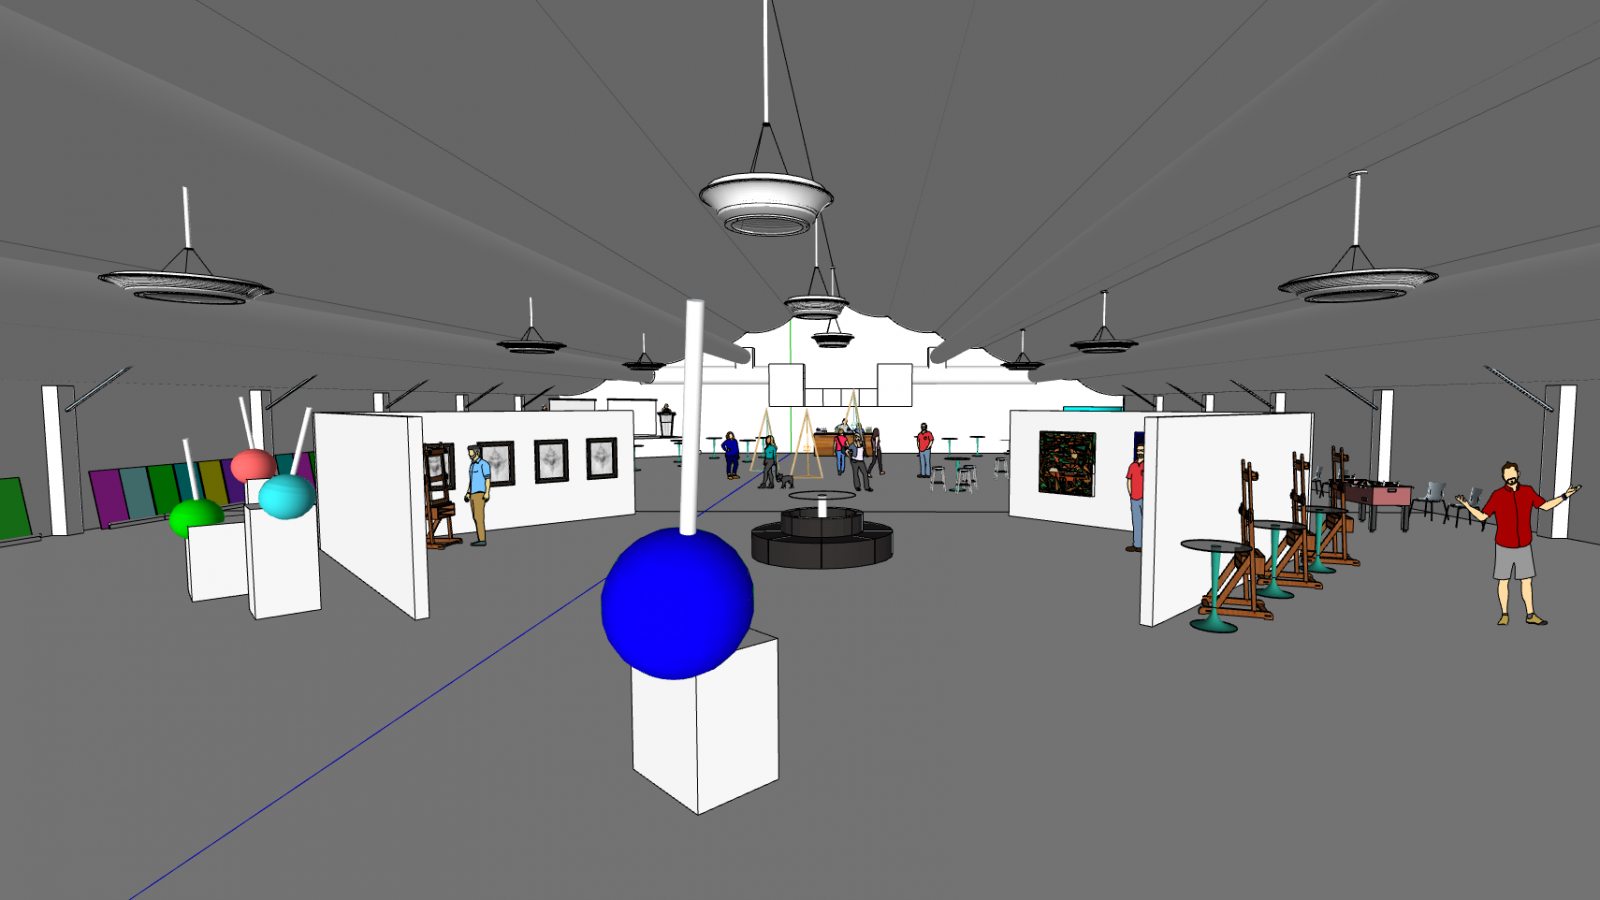 Sketchup_Model_inside_Desert_Tent